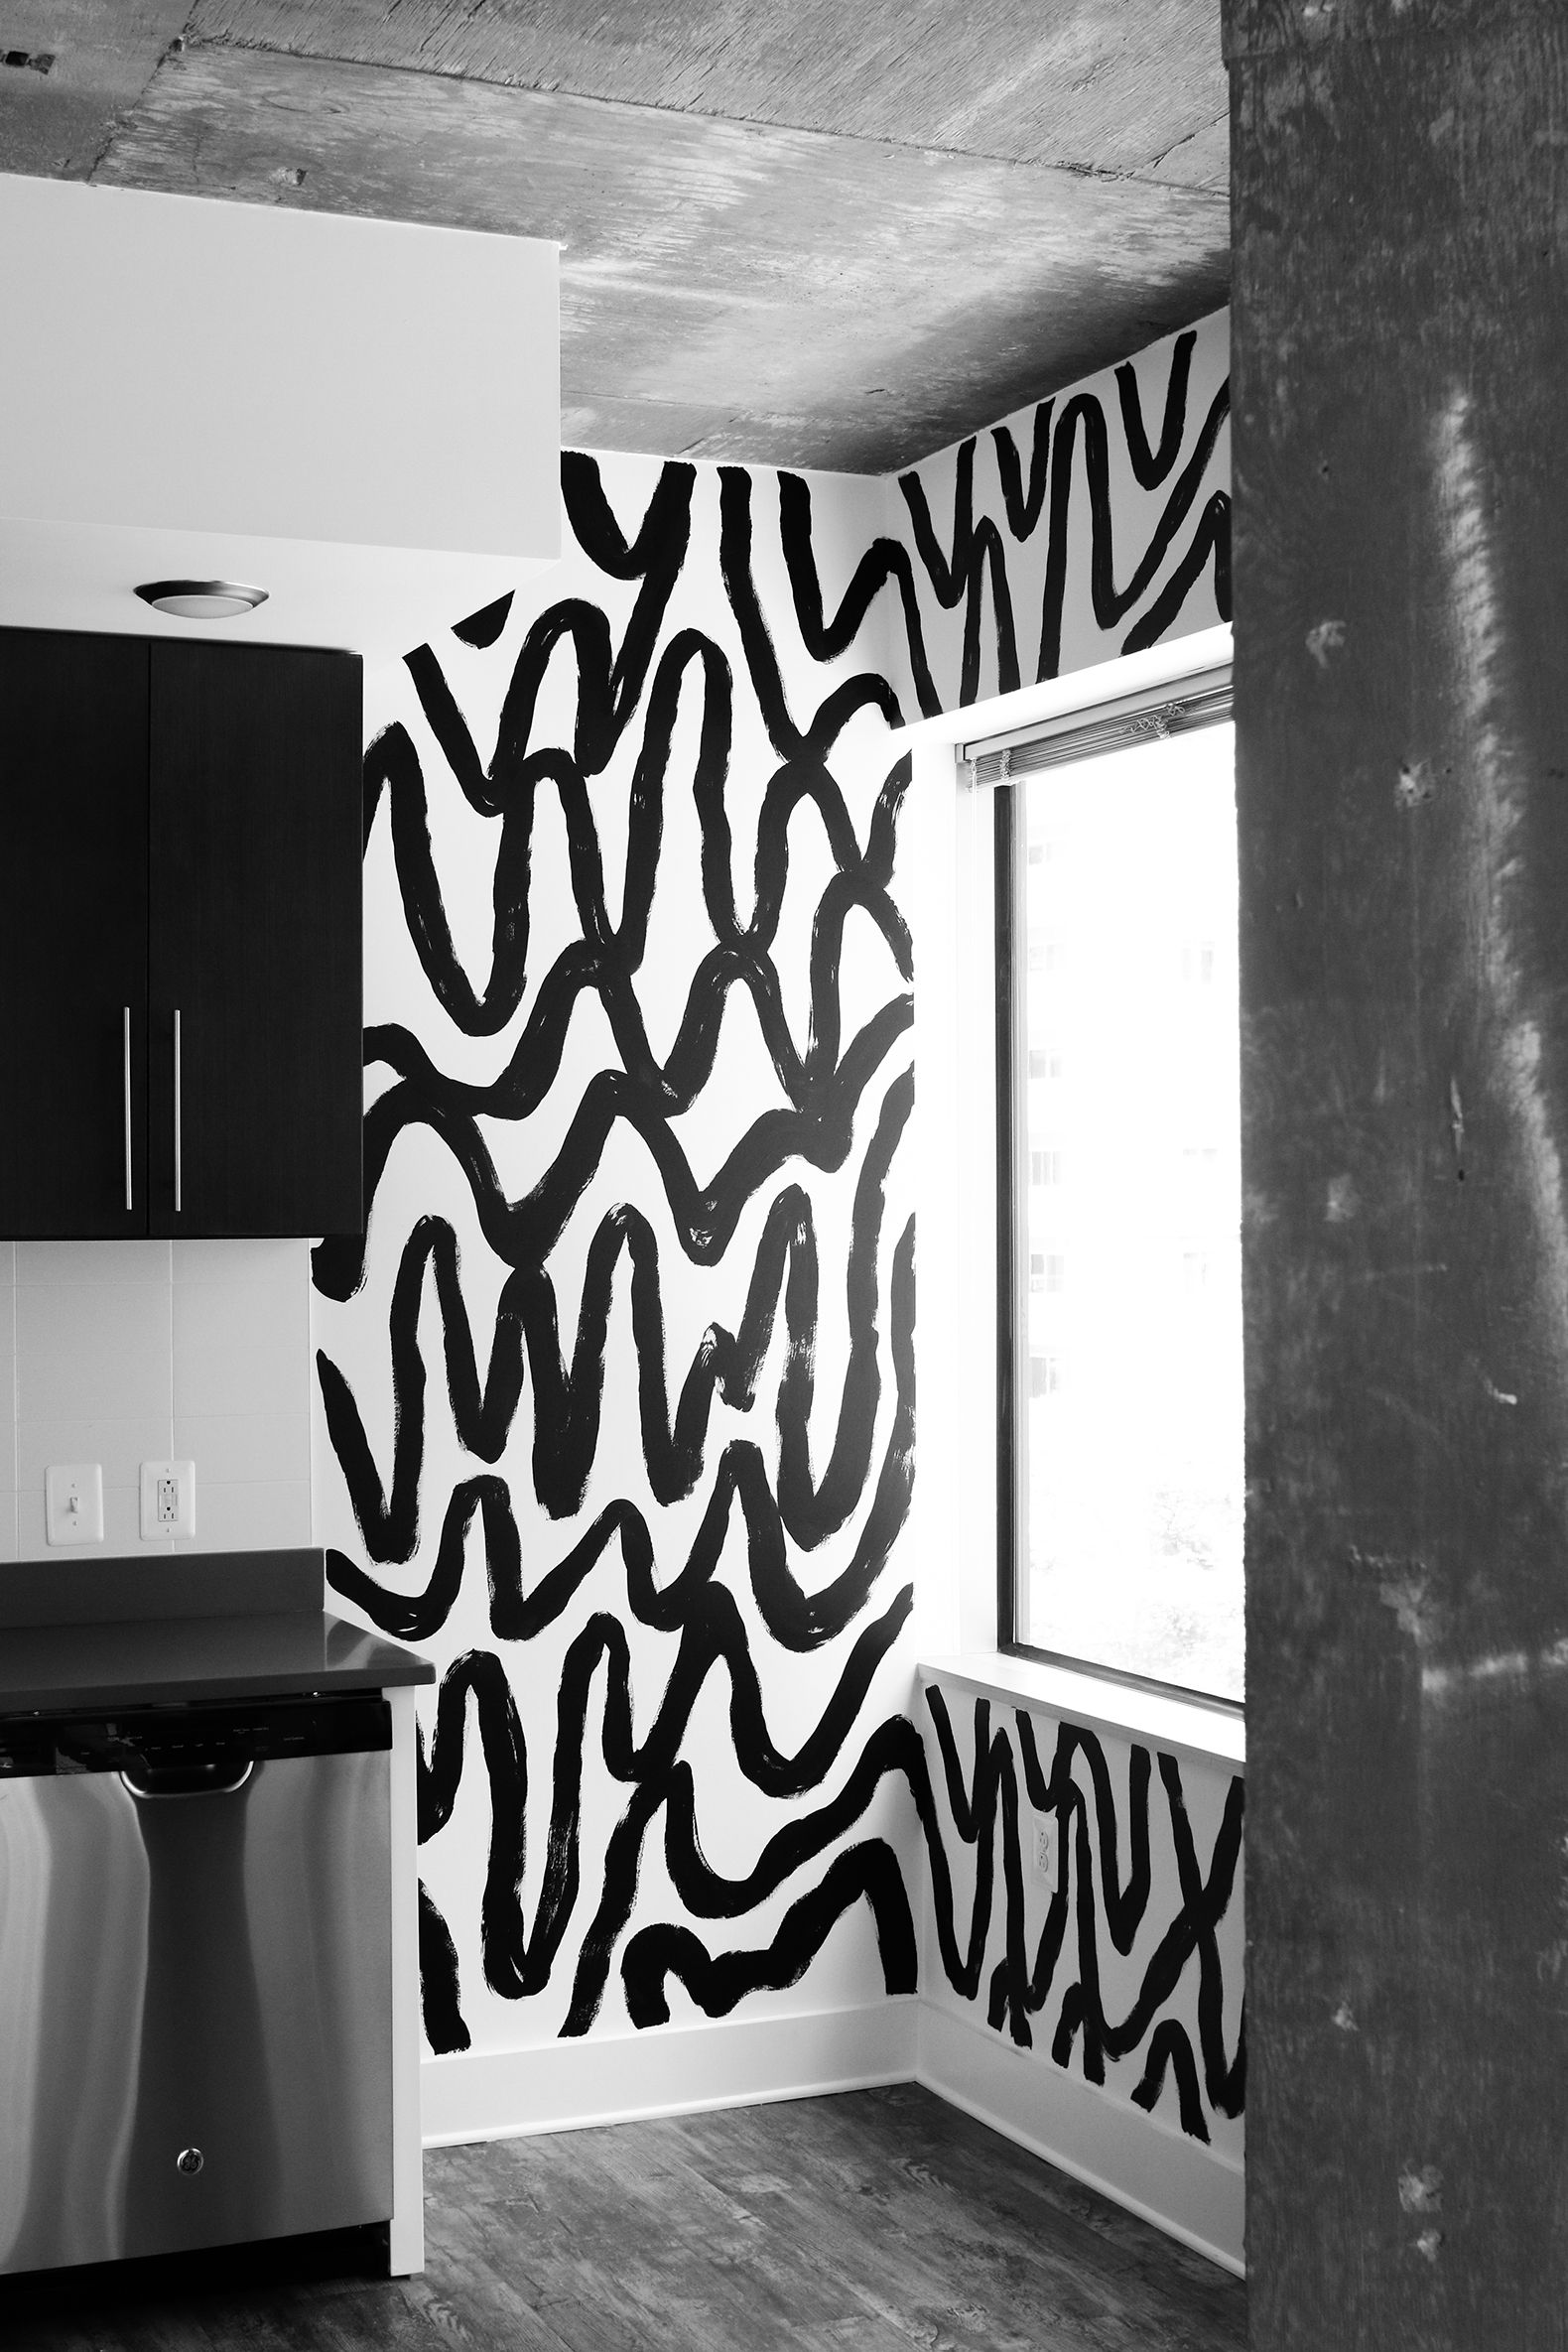 Black White Abstract Mural Meg Biram Home Decor Inspiration Home Decor Accent Wall Bedroom